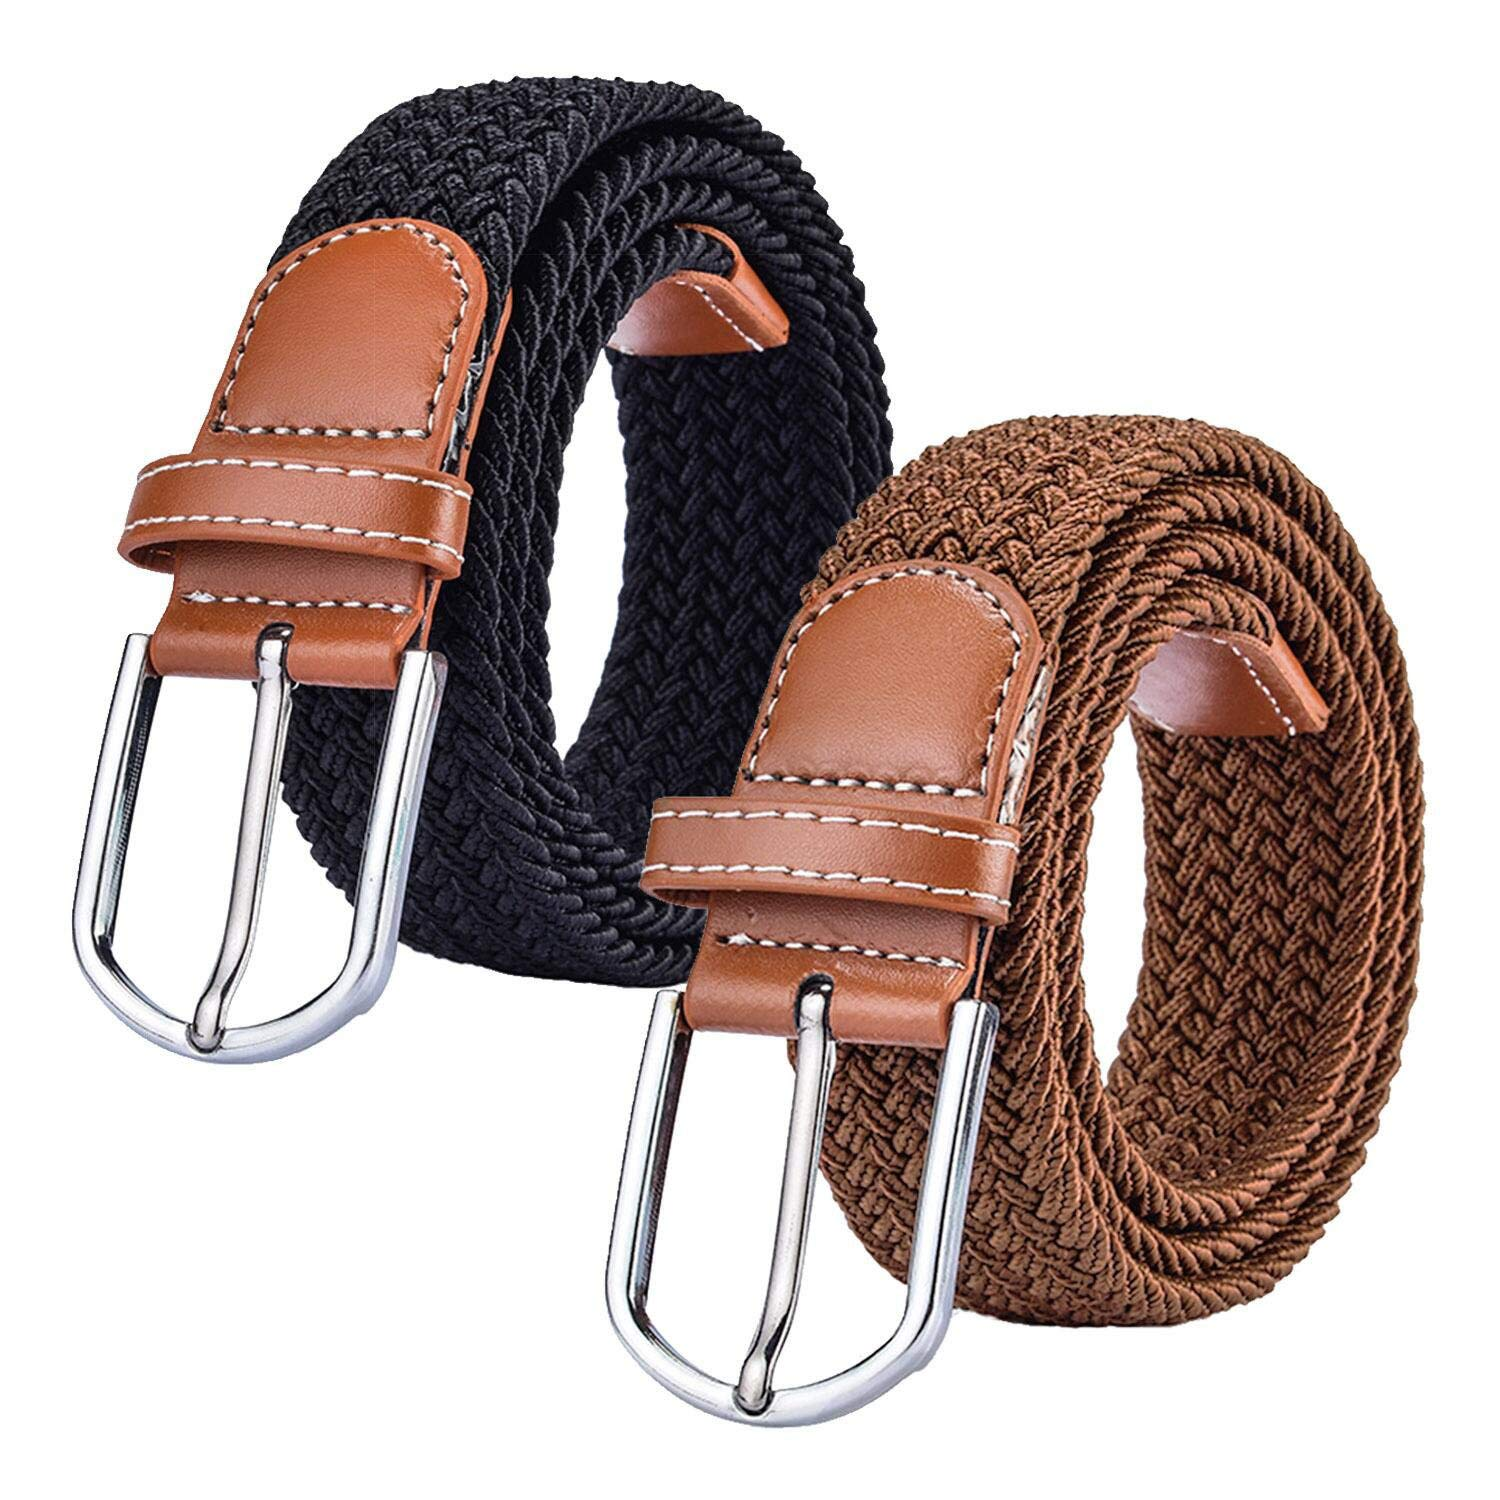 (2 pack) Womens Stretch Canvas Braided Belt - Women's Eslastic Woven Belts for Jeans B07CZ6B864